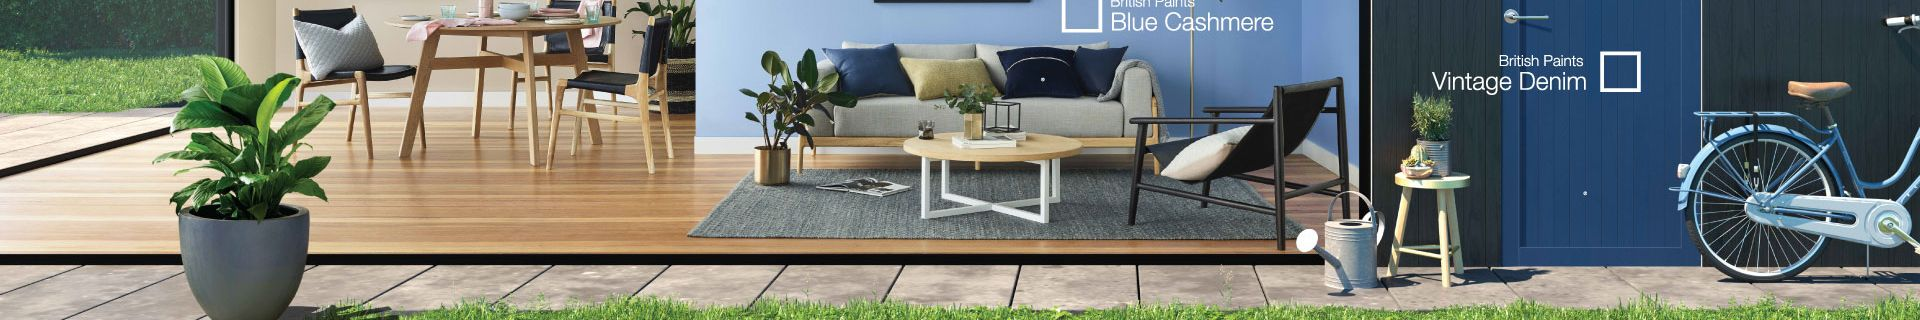 Living room with timber flooring, blue walls, couch and coffee table. Walls are painted in British Paints Blue Cashmere, Ace of Spades and Vintage Denim.